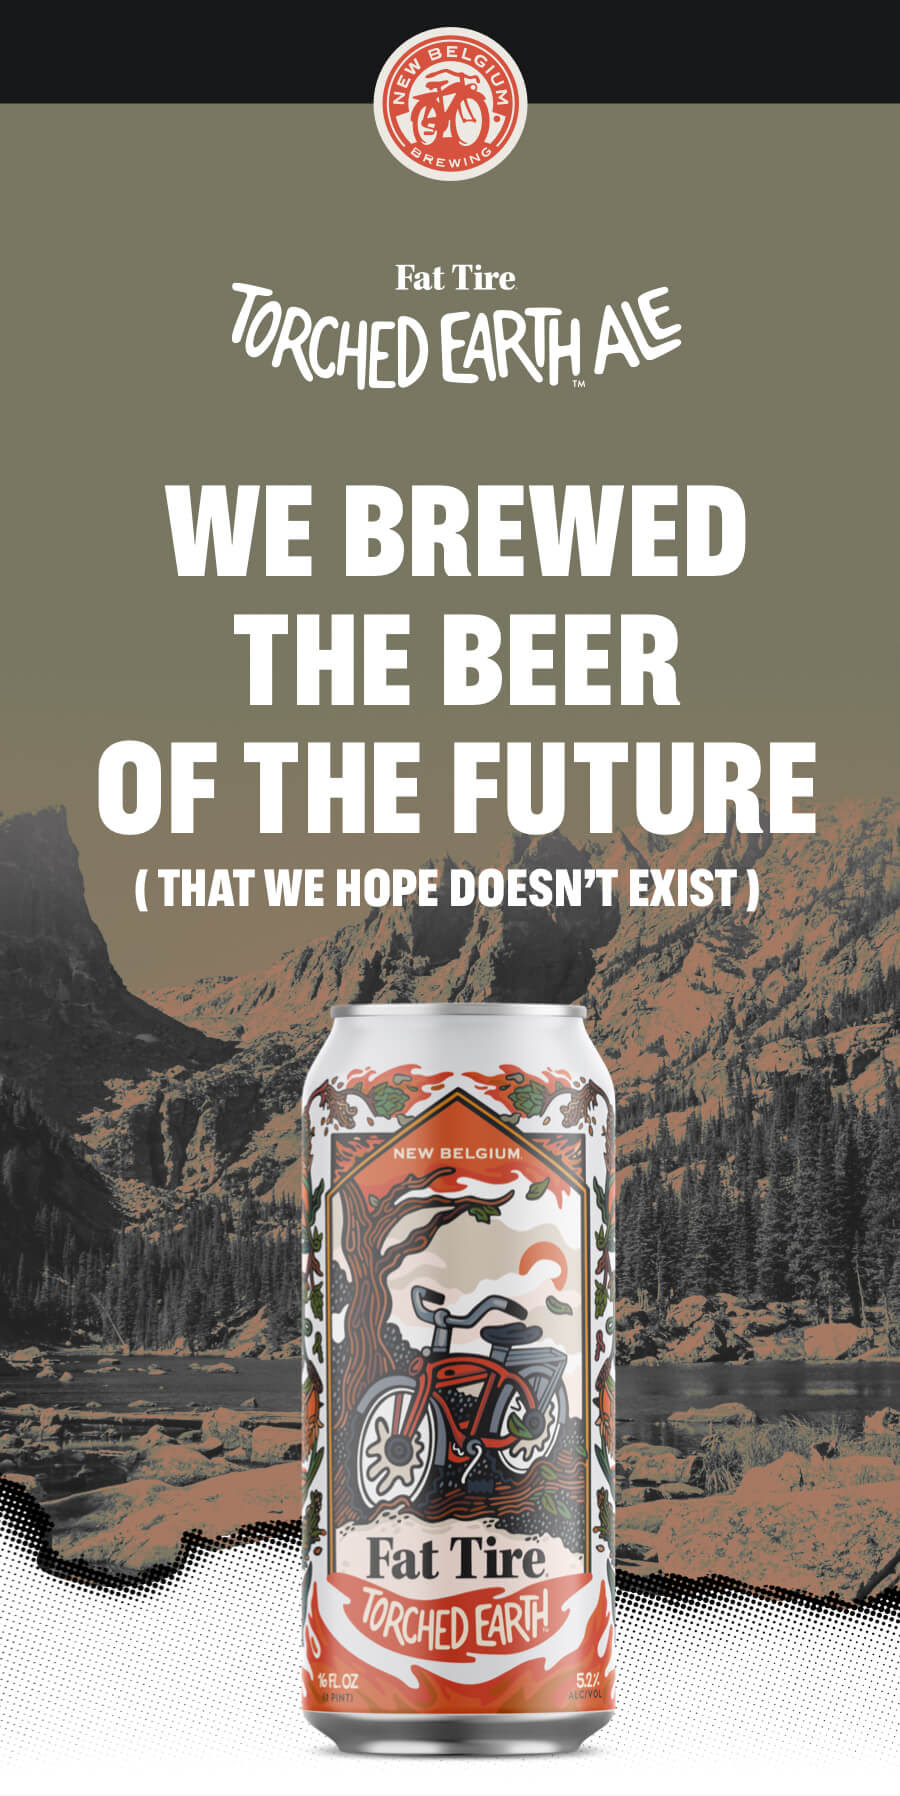 Fat Tire. Torched Earth Ale. We brewed the beer of the future (That we hope doesn't exist)